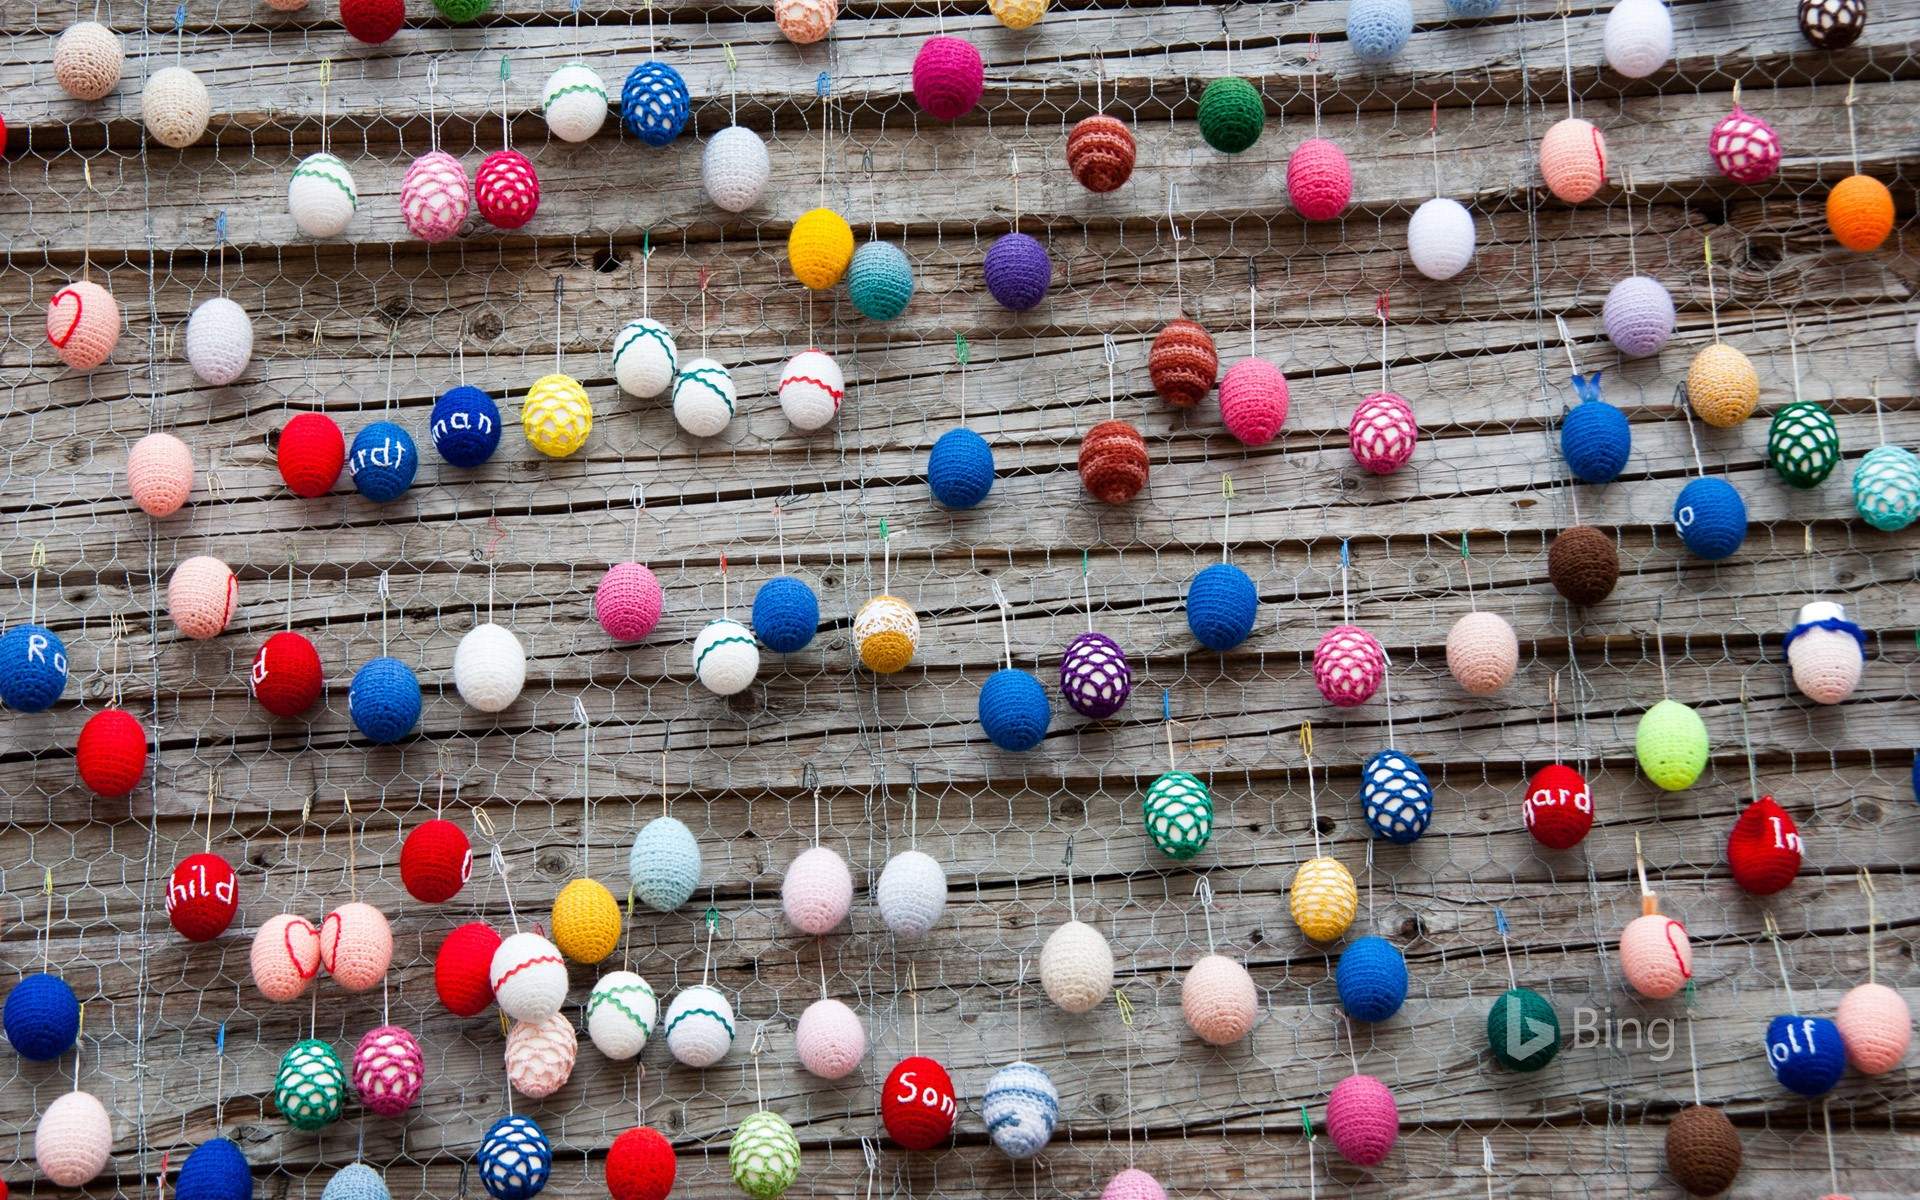 Easter decorations at Alexanderplatz, Berlin, Germany